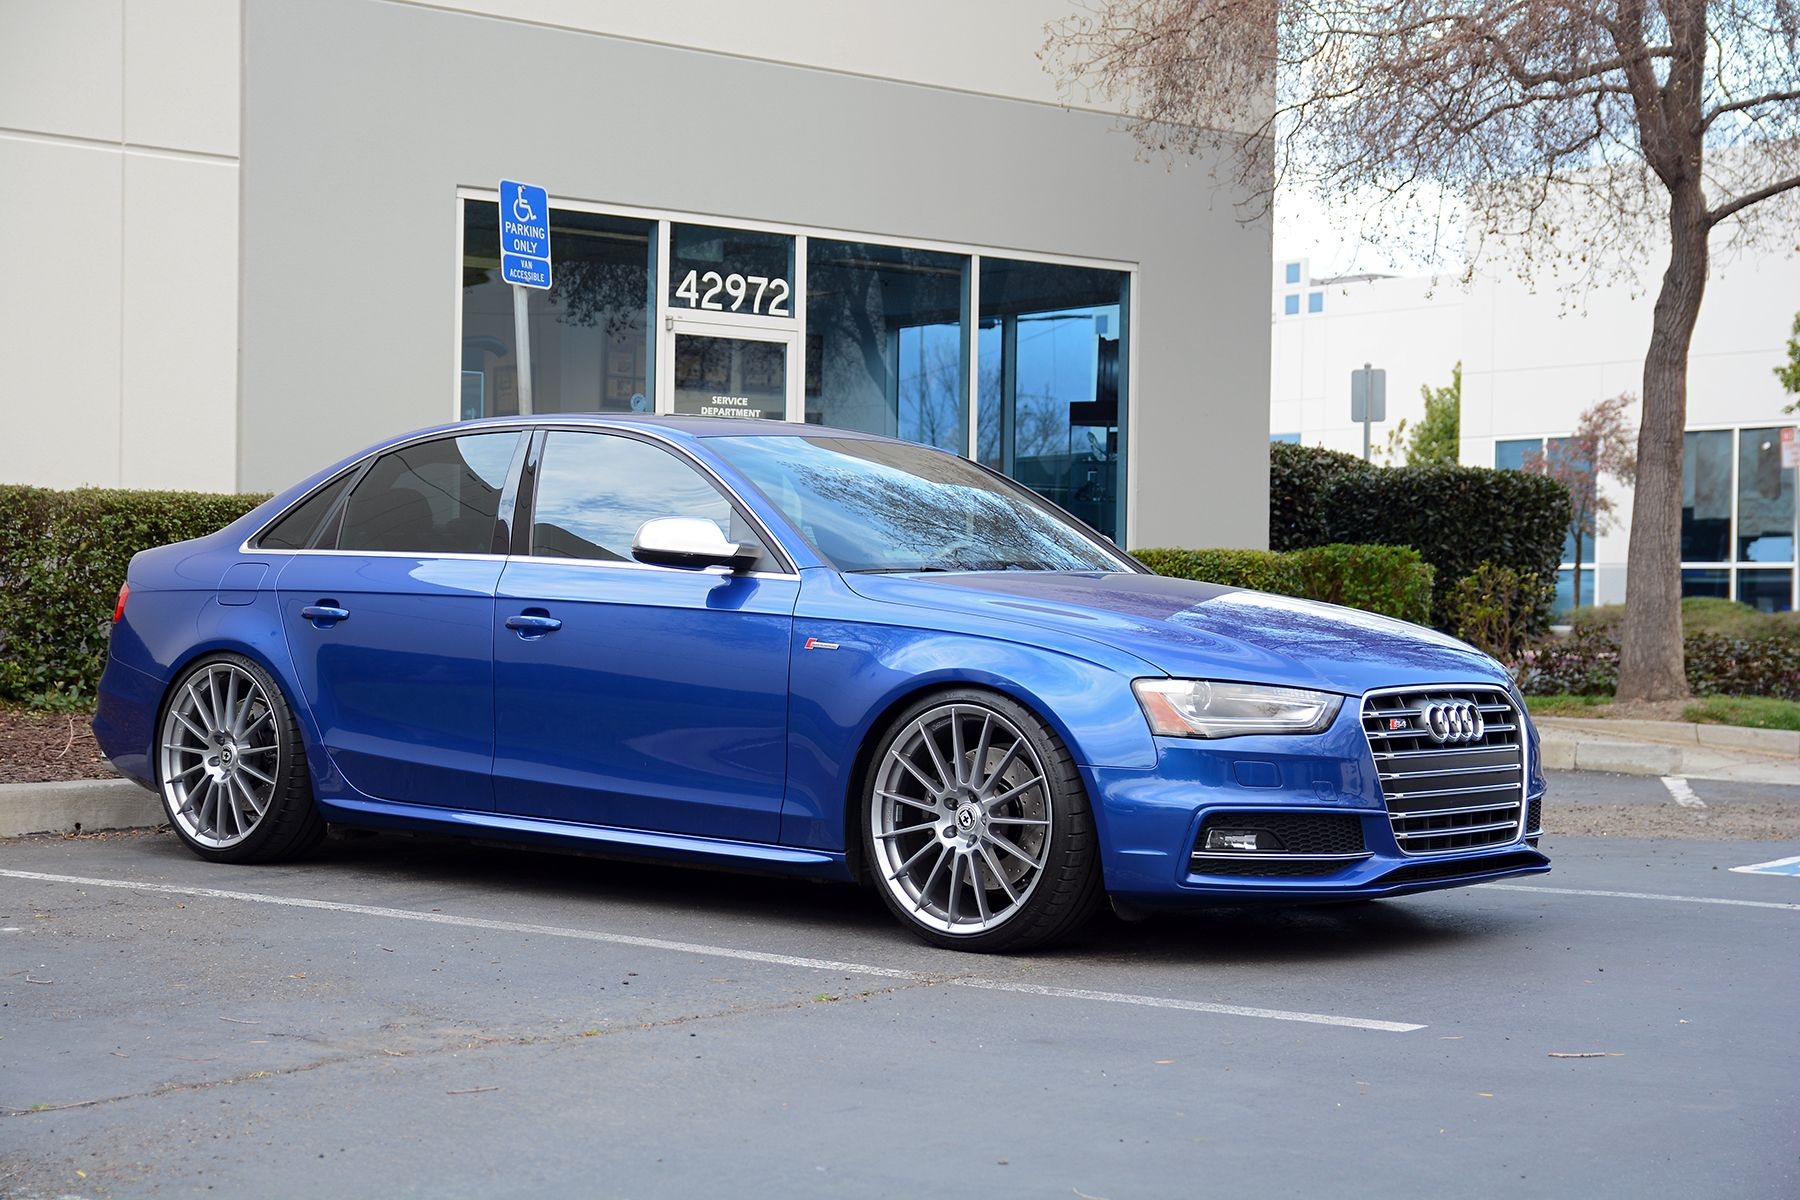 modified b8 5 audi s4 on hre wheels at 034motorsport b8. Black Bedroom Furniture Sets. Home Design Ideas